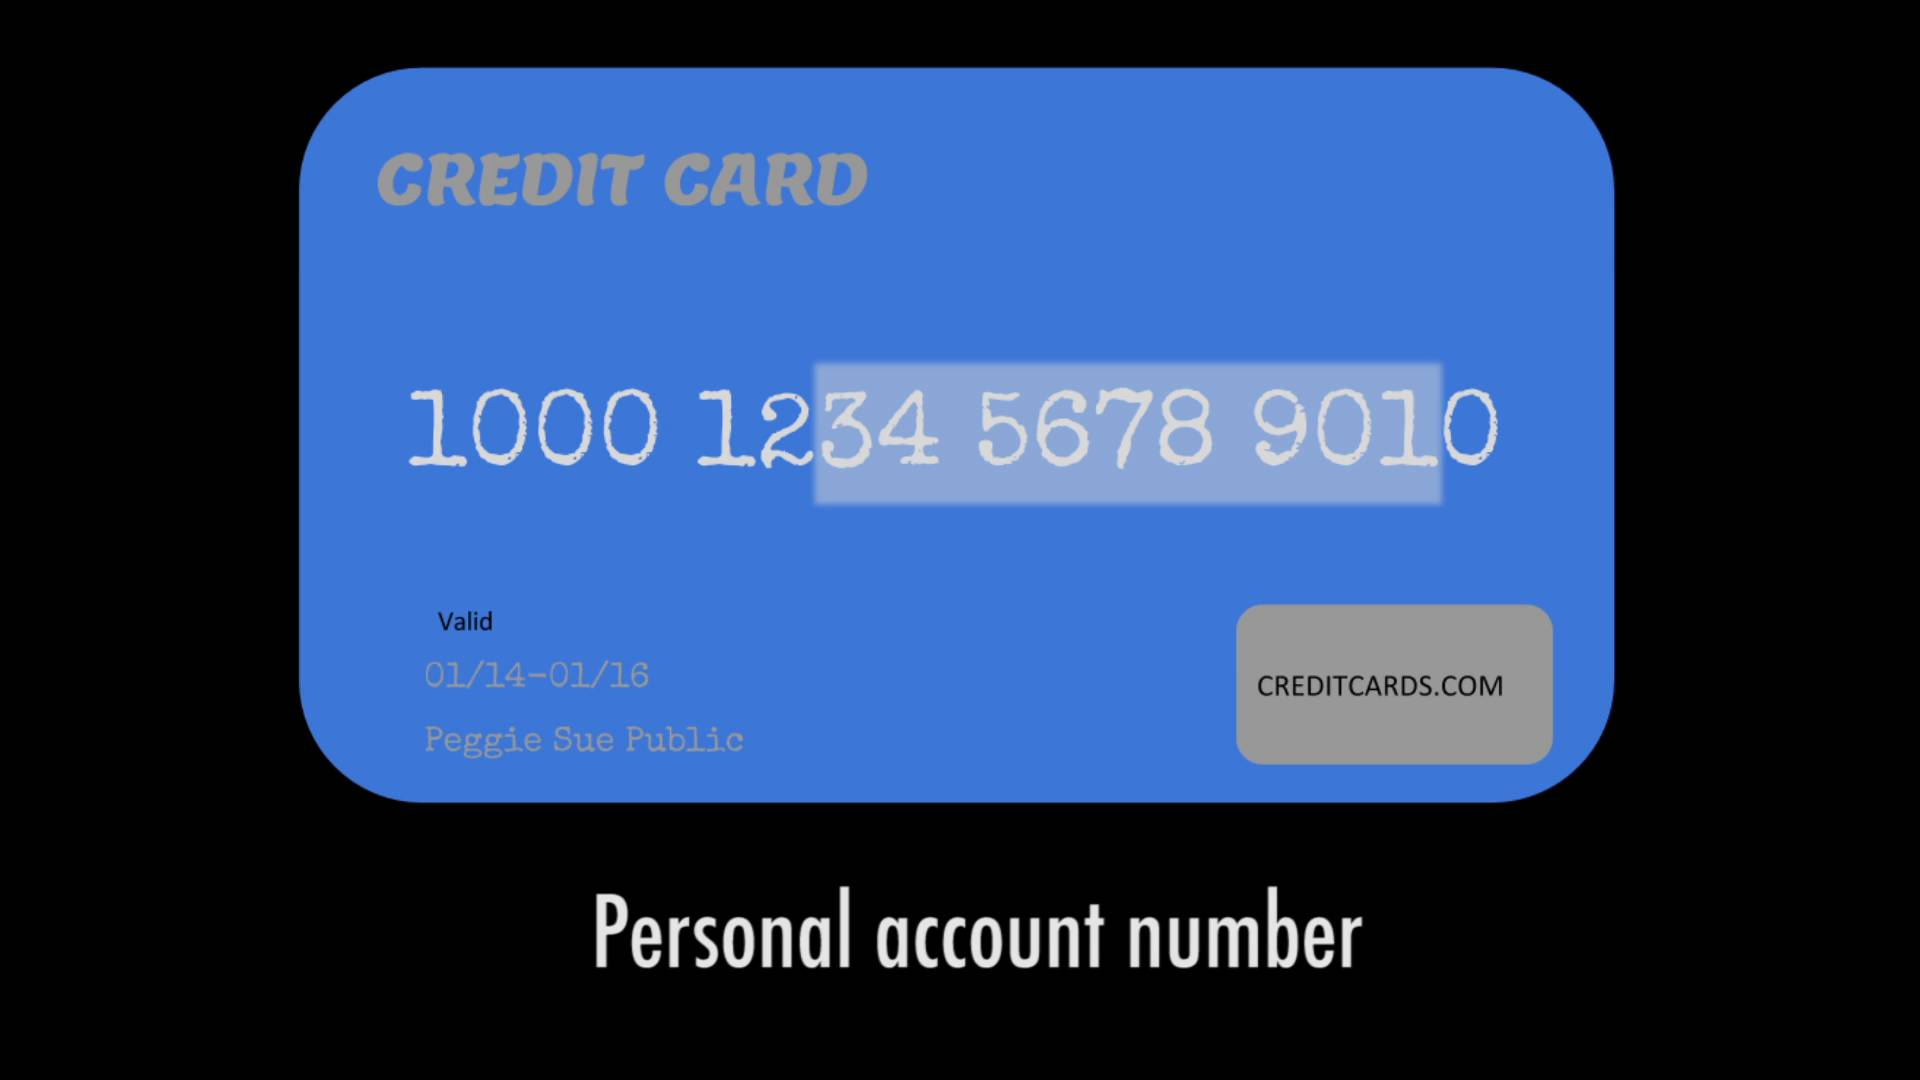 Video: Anatomy of a credit card account number - CreditCards.com